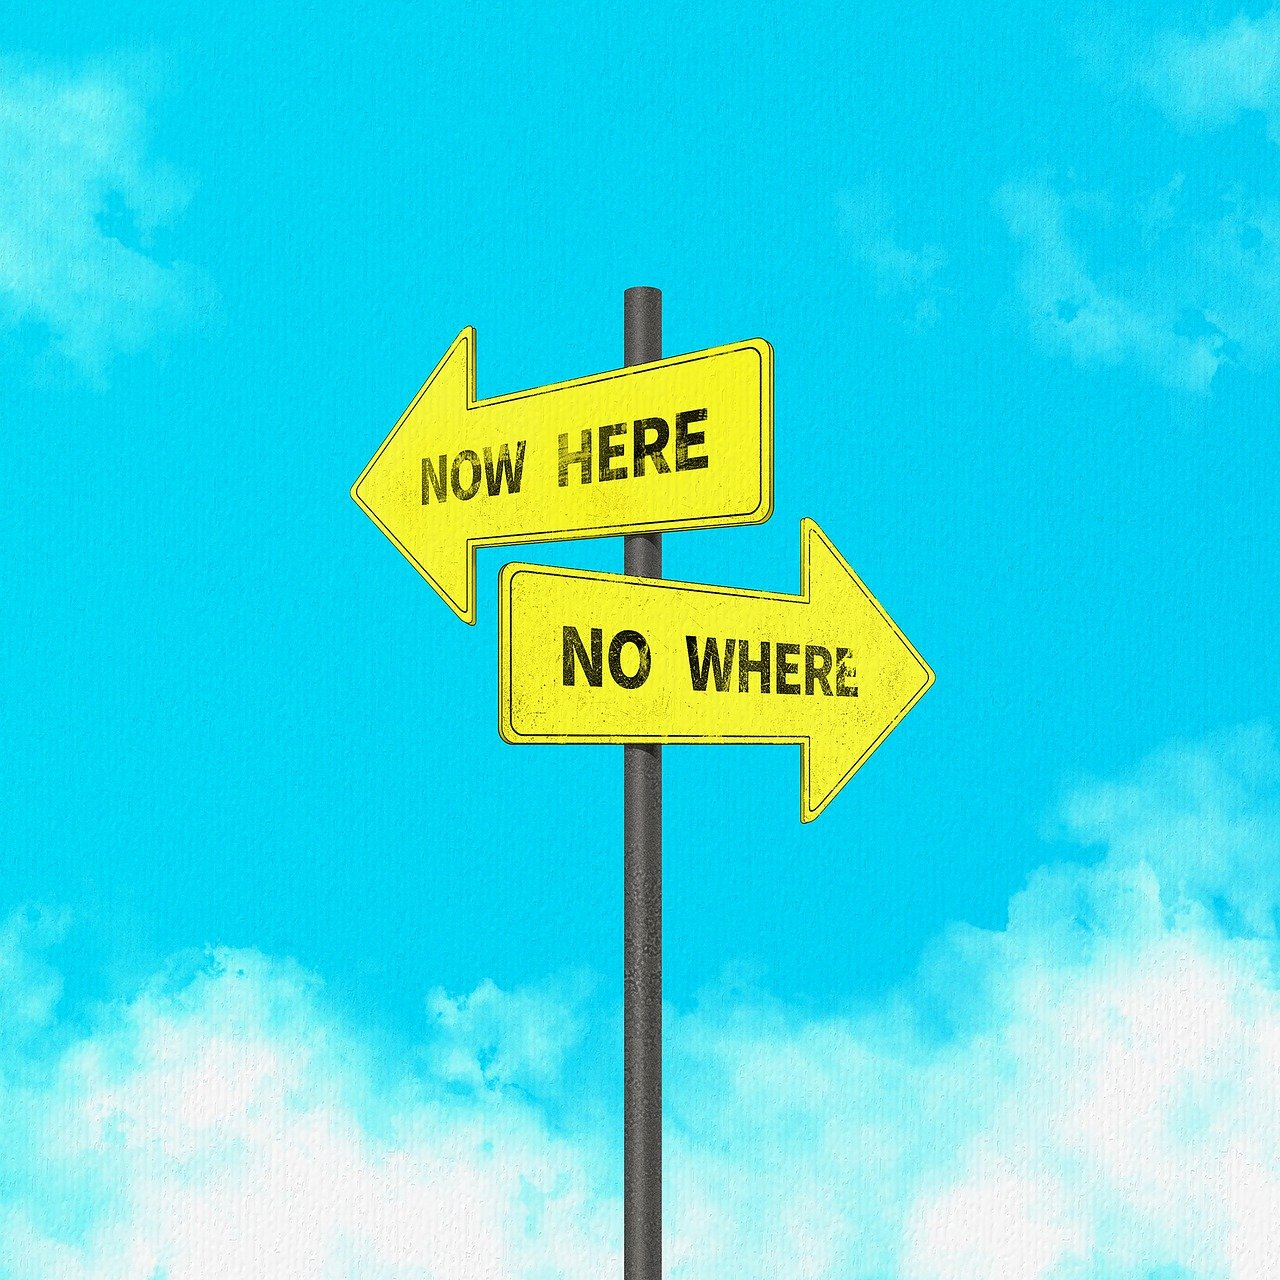 Now here nowhere